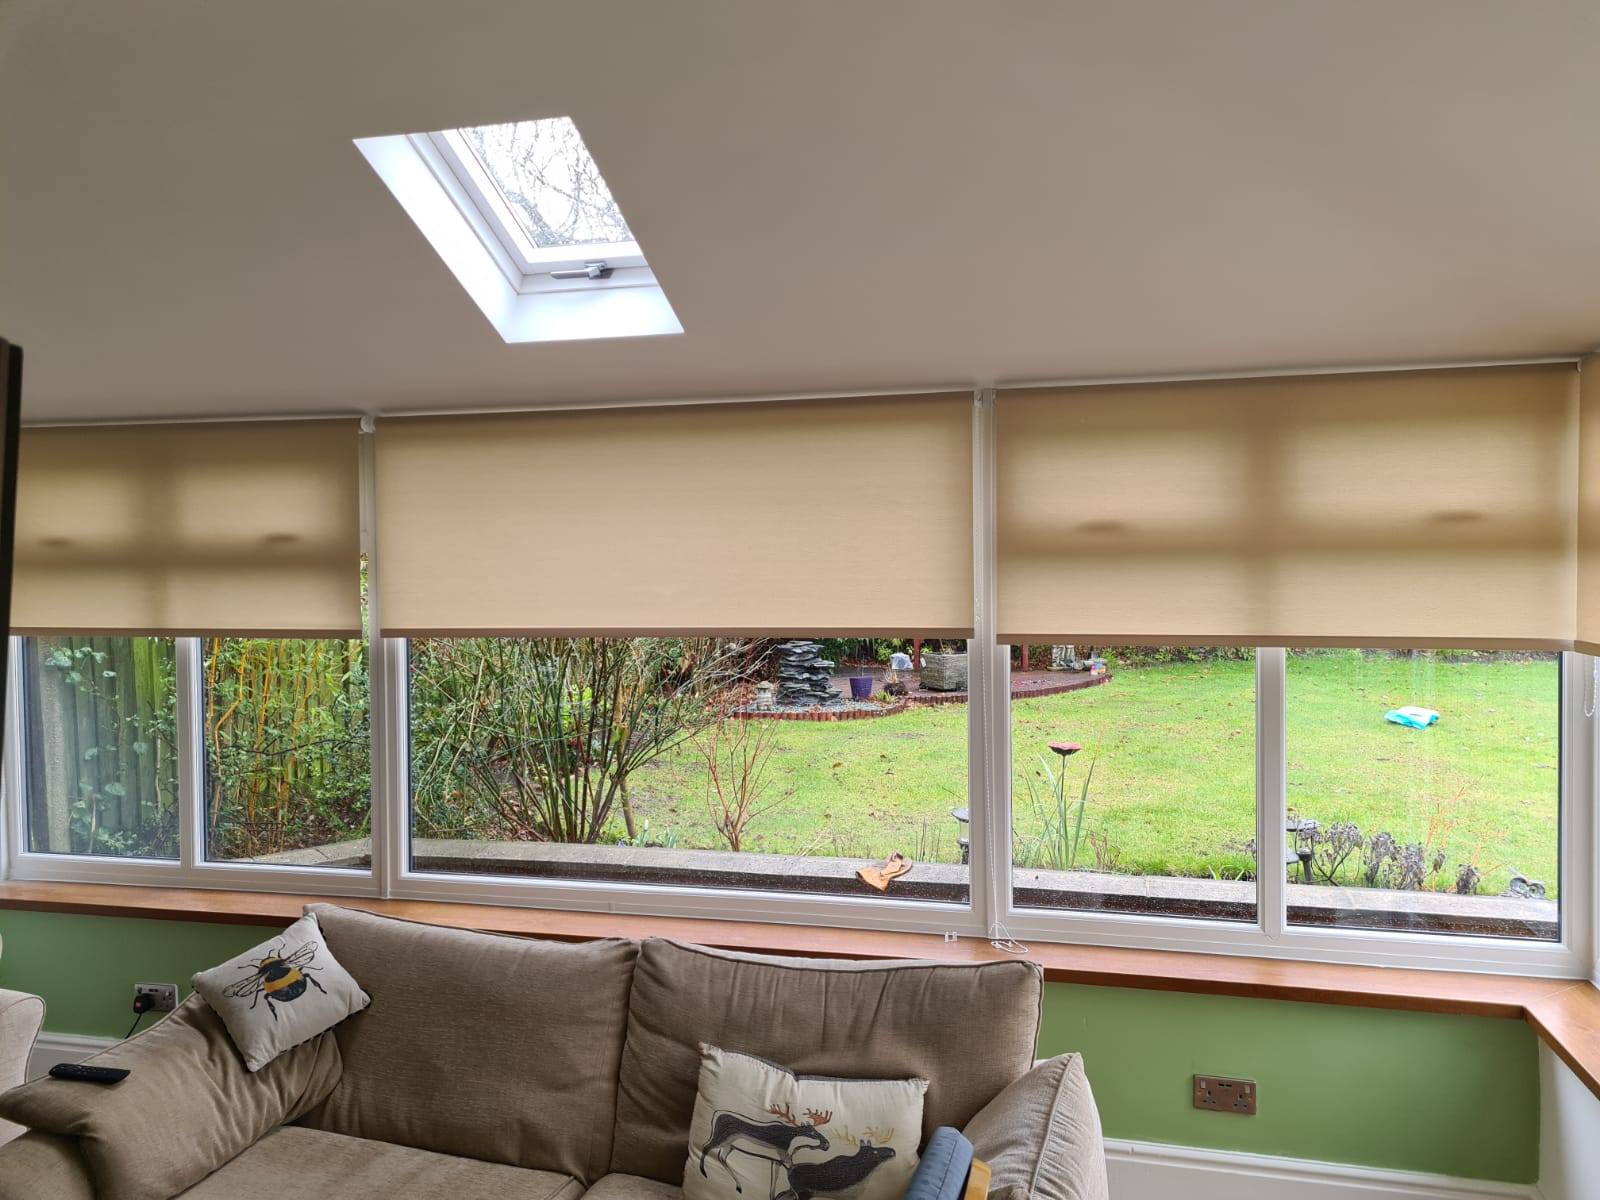 Beige roller blinds partially closed over conservatory windows, with a brown sofa in the foreground and a garden visible outside.